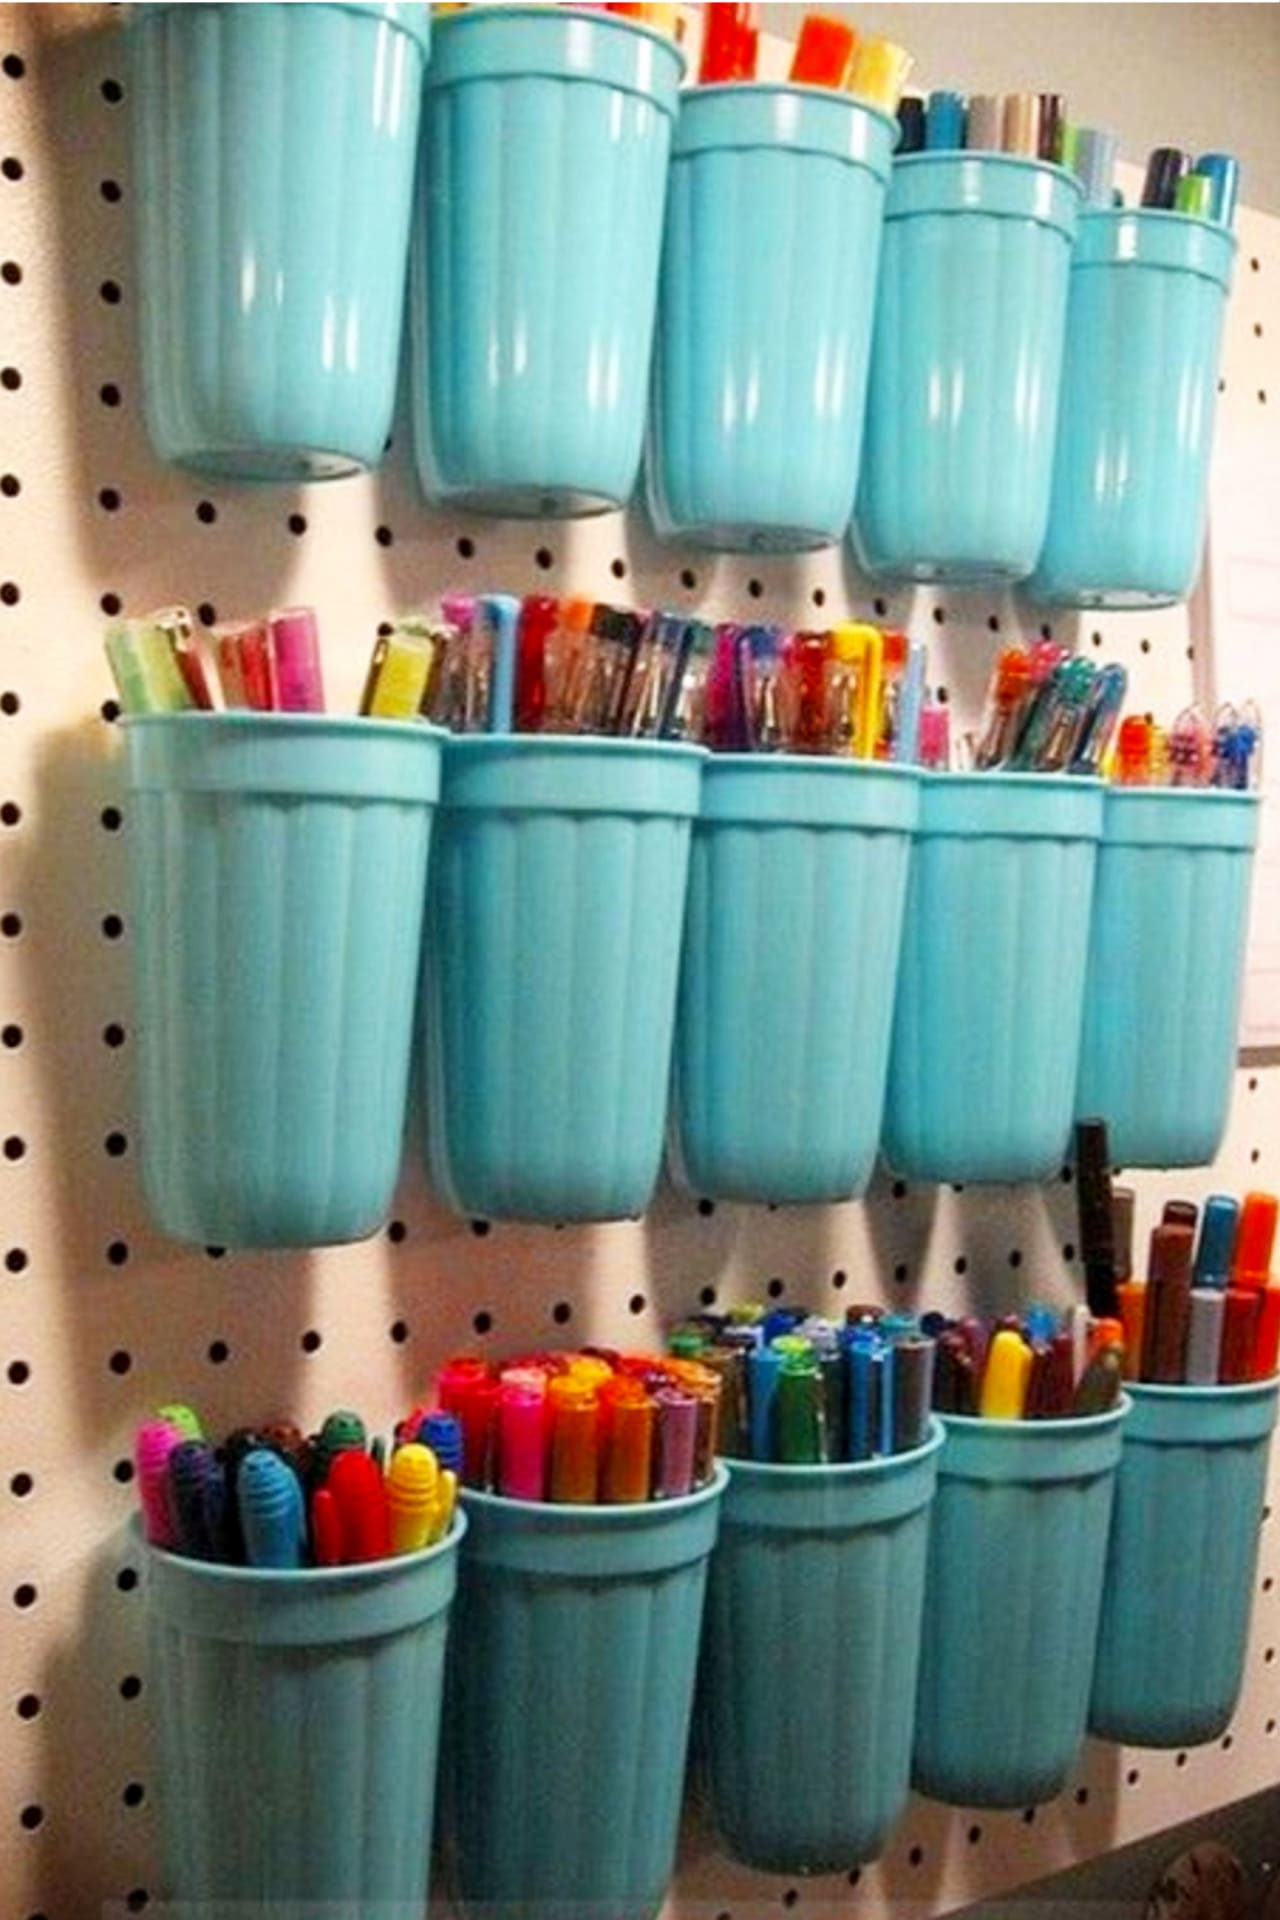 Dollar Stores Organizing - Craft room ideas on a budget with Dollar Store and Dollar Tree items and organizers - creative ways to organize your craft room wall